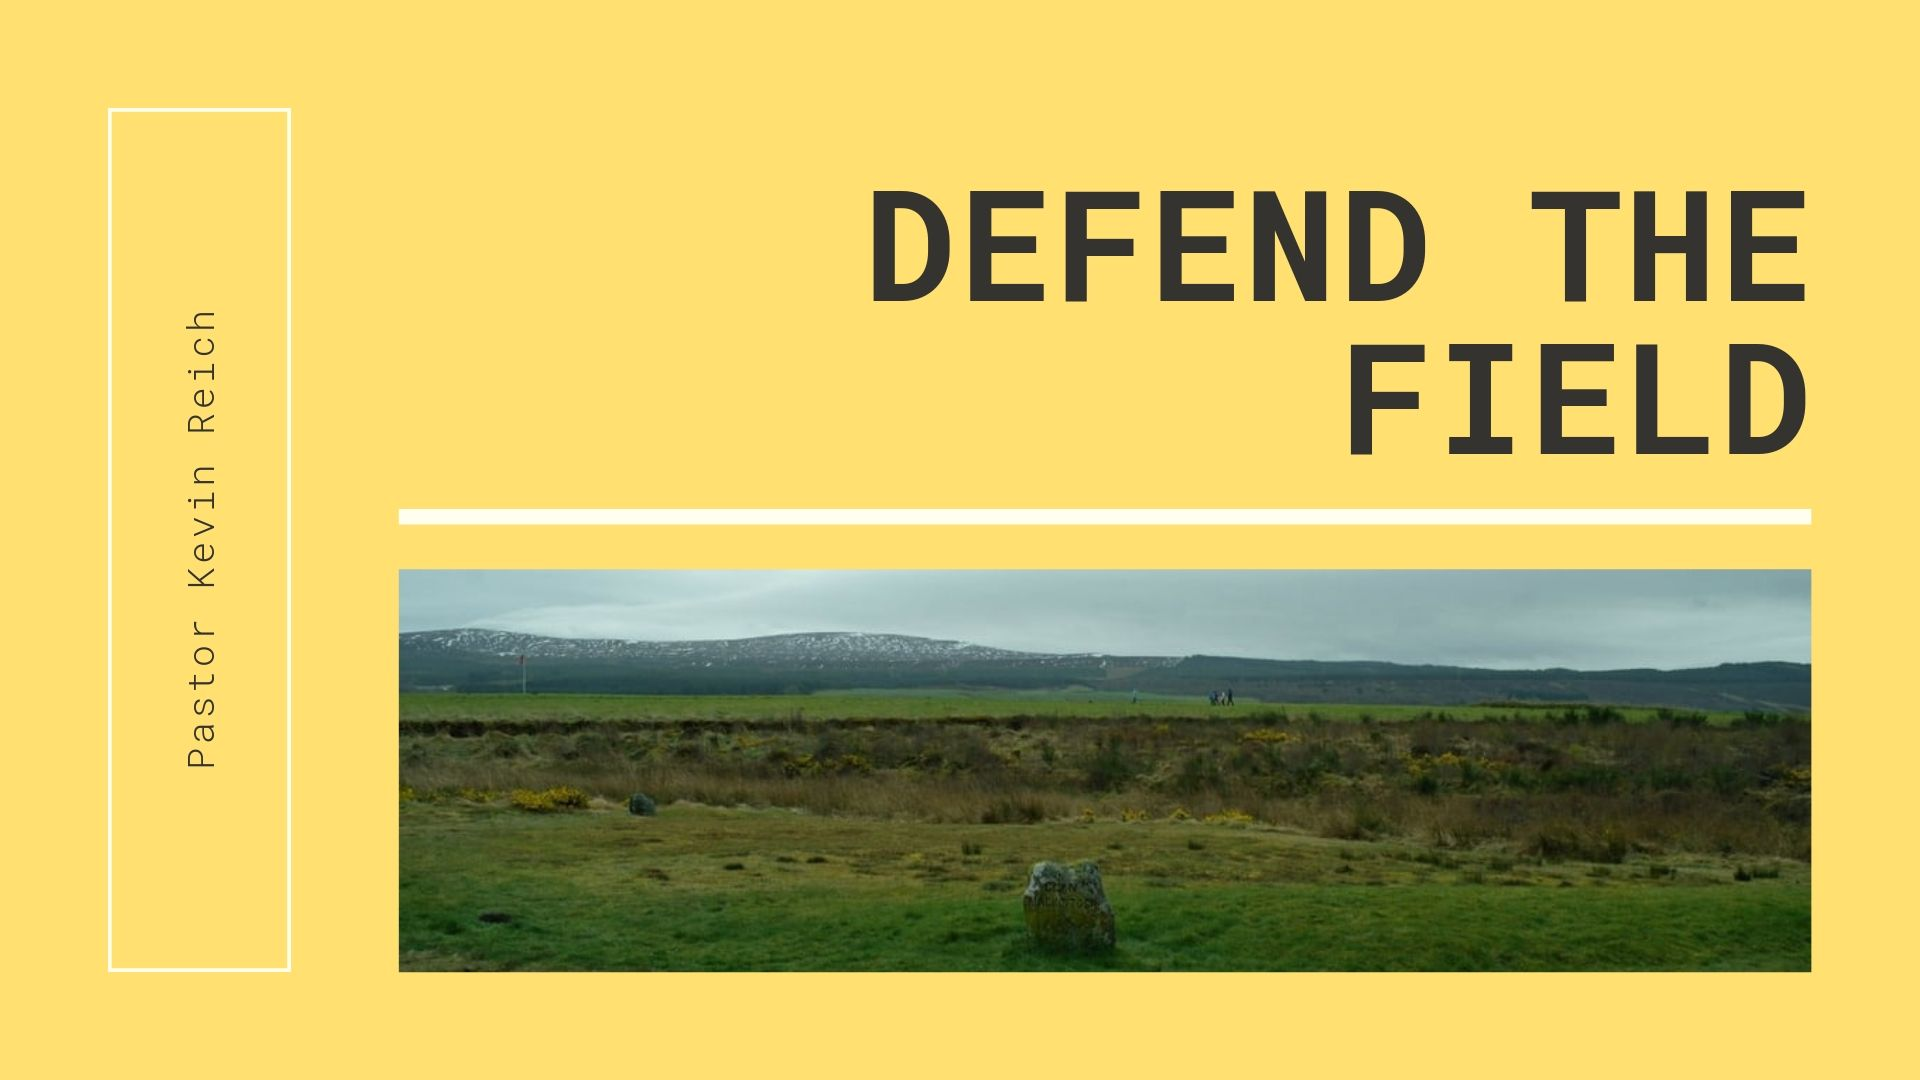 Defend The Field